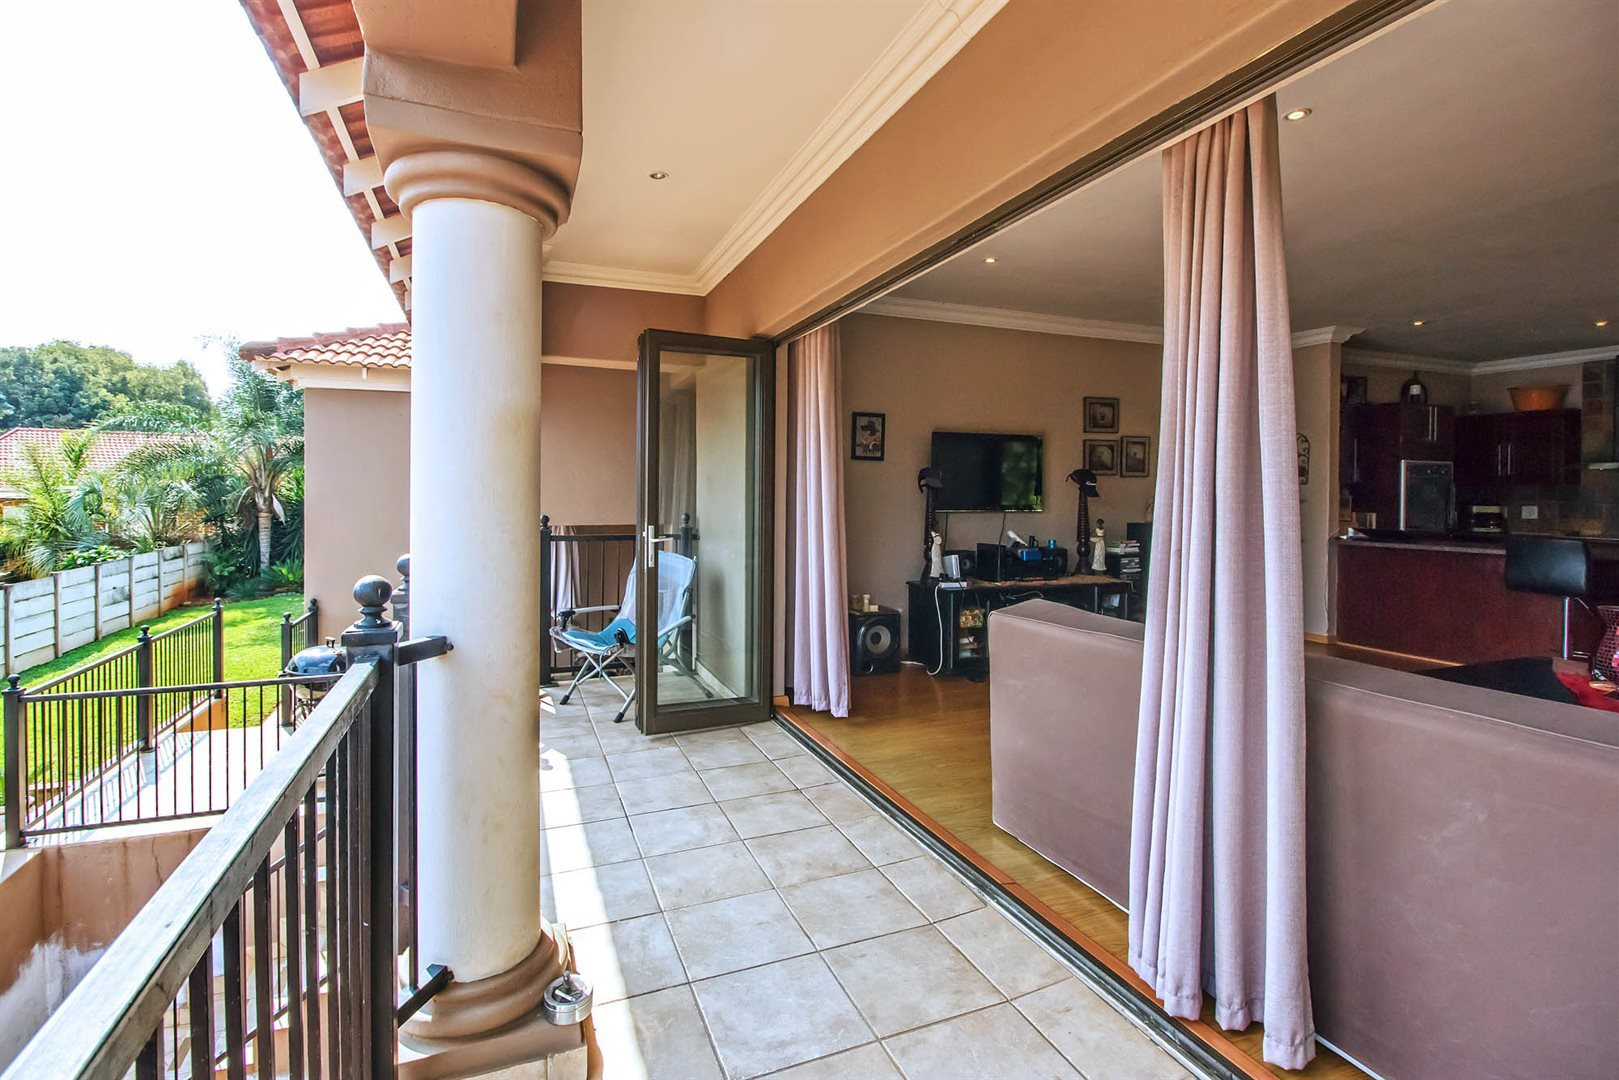 Pretoria, Wonderboom South Property  | Houses For Sale Wonderboom South, Wonderboom South, House 3 bedrooms property for sale Price:1,599,000